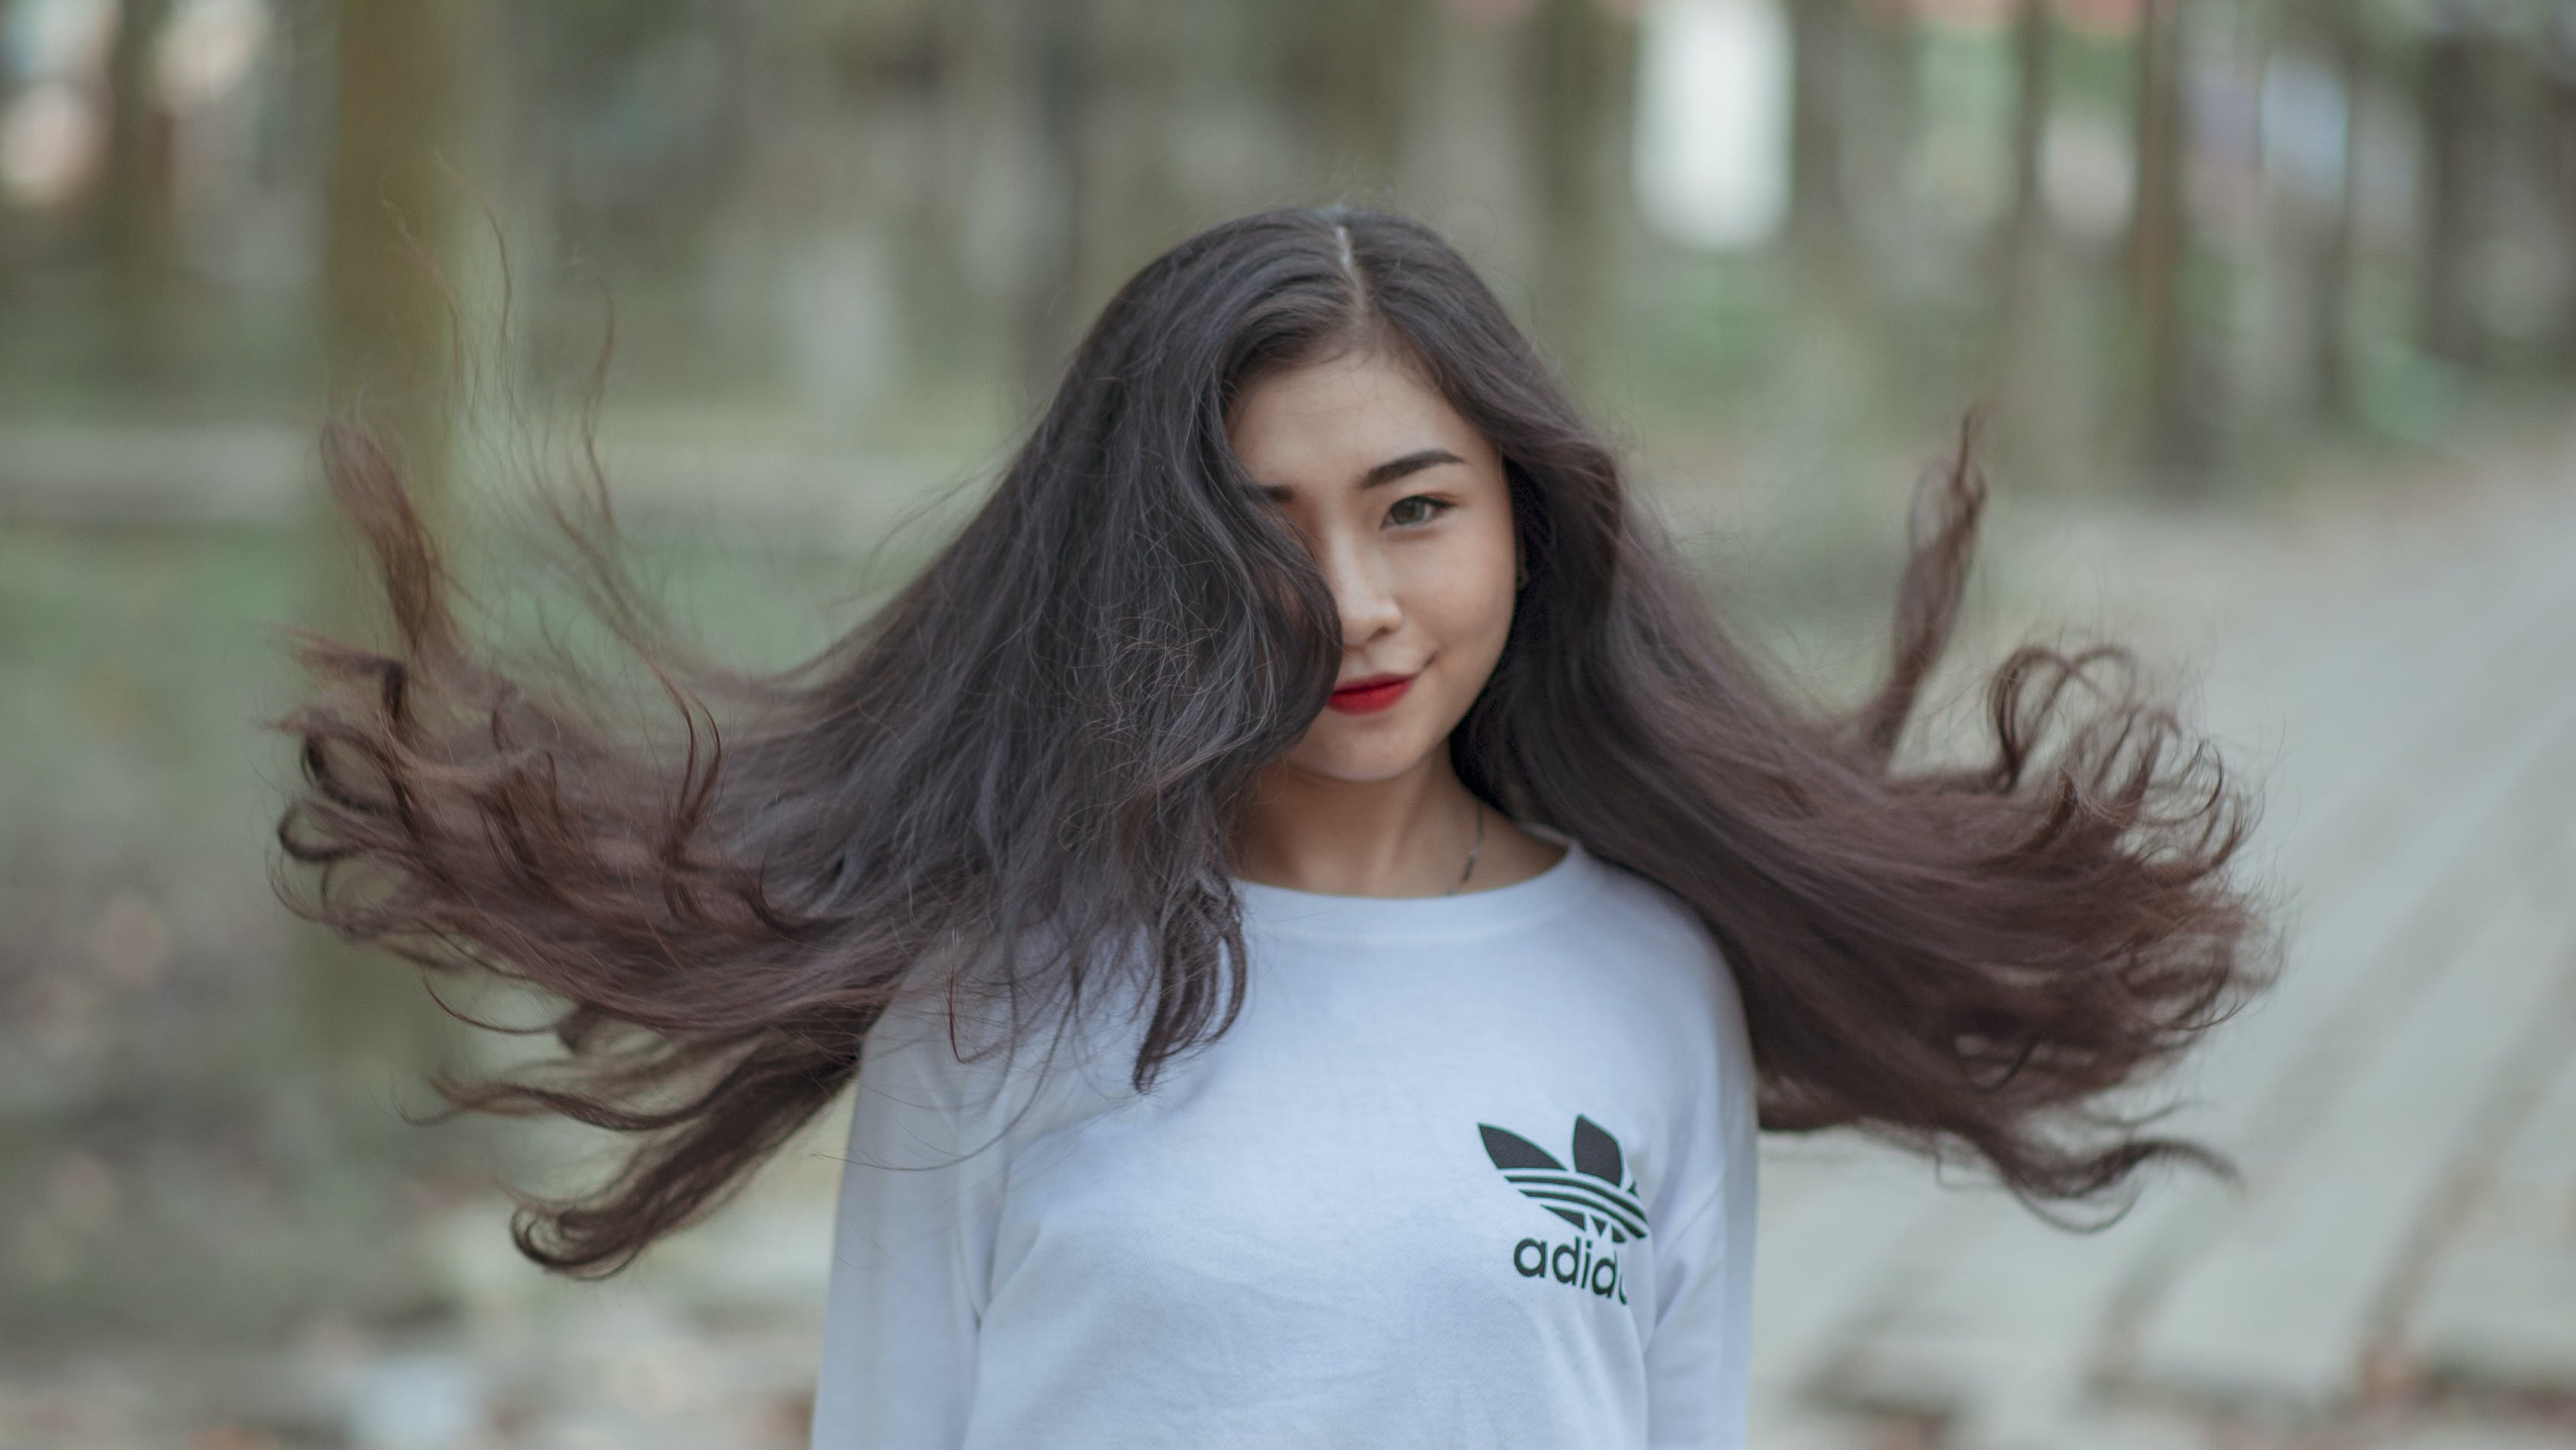 Woman With Long Hair Waving on Air and Wearing White Adidas Shirt